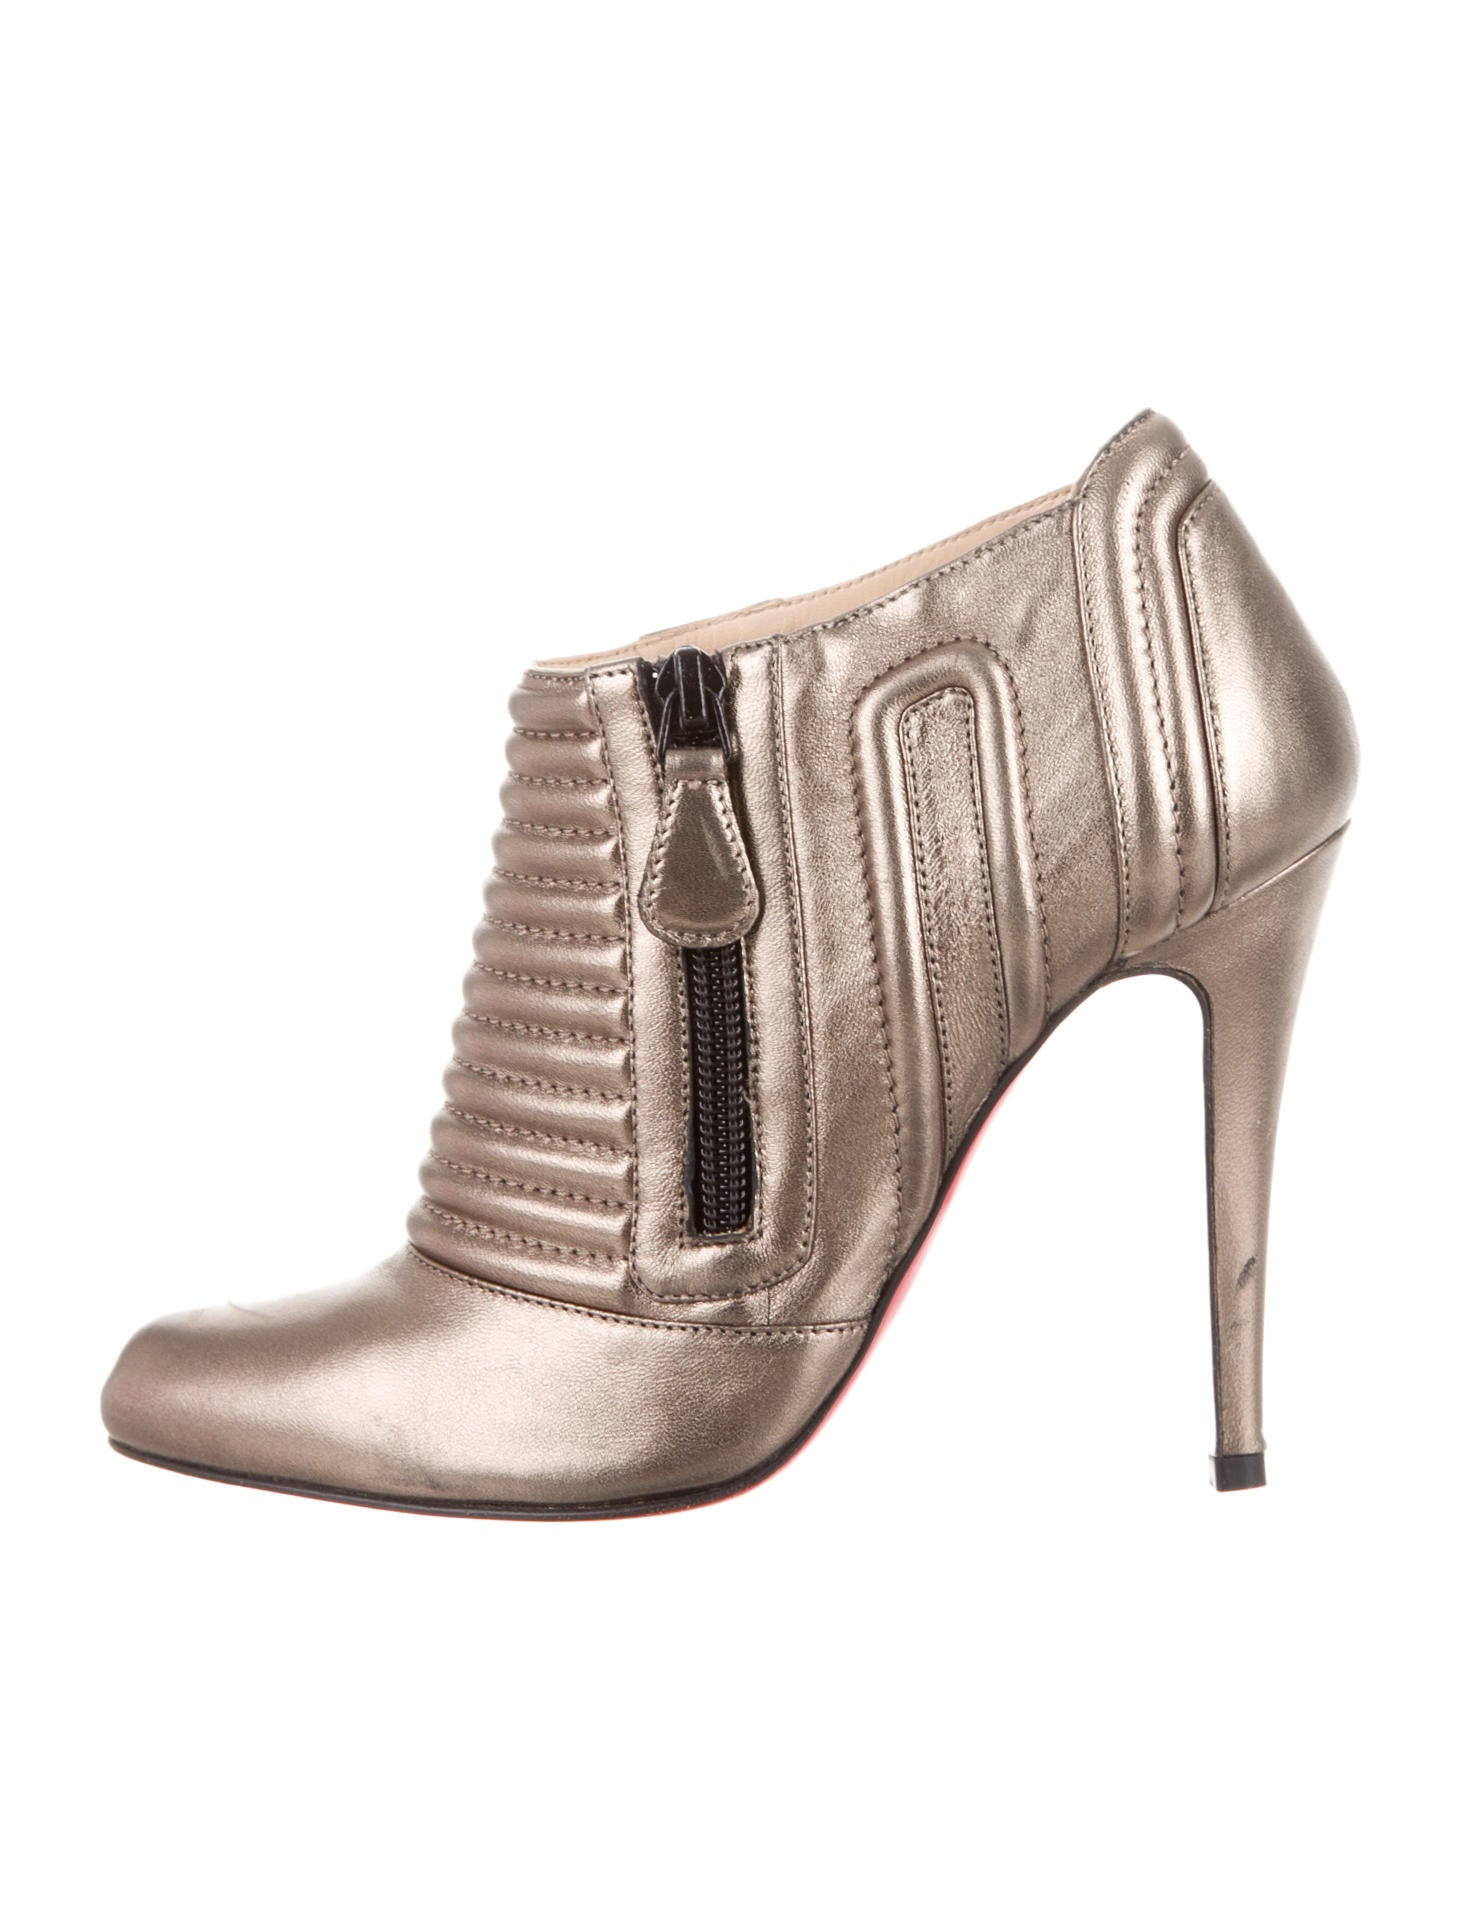 christian louboutin booties Gold-tone metallic leather | The ...